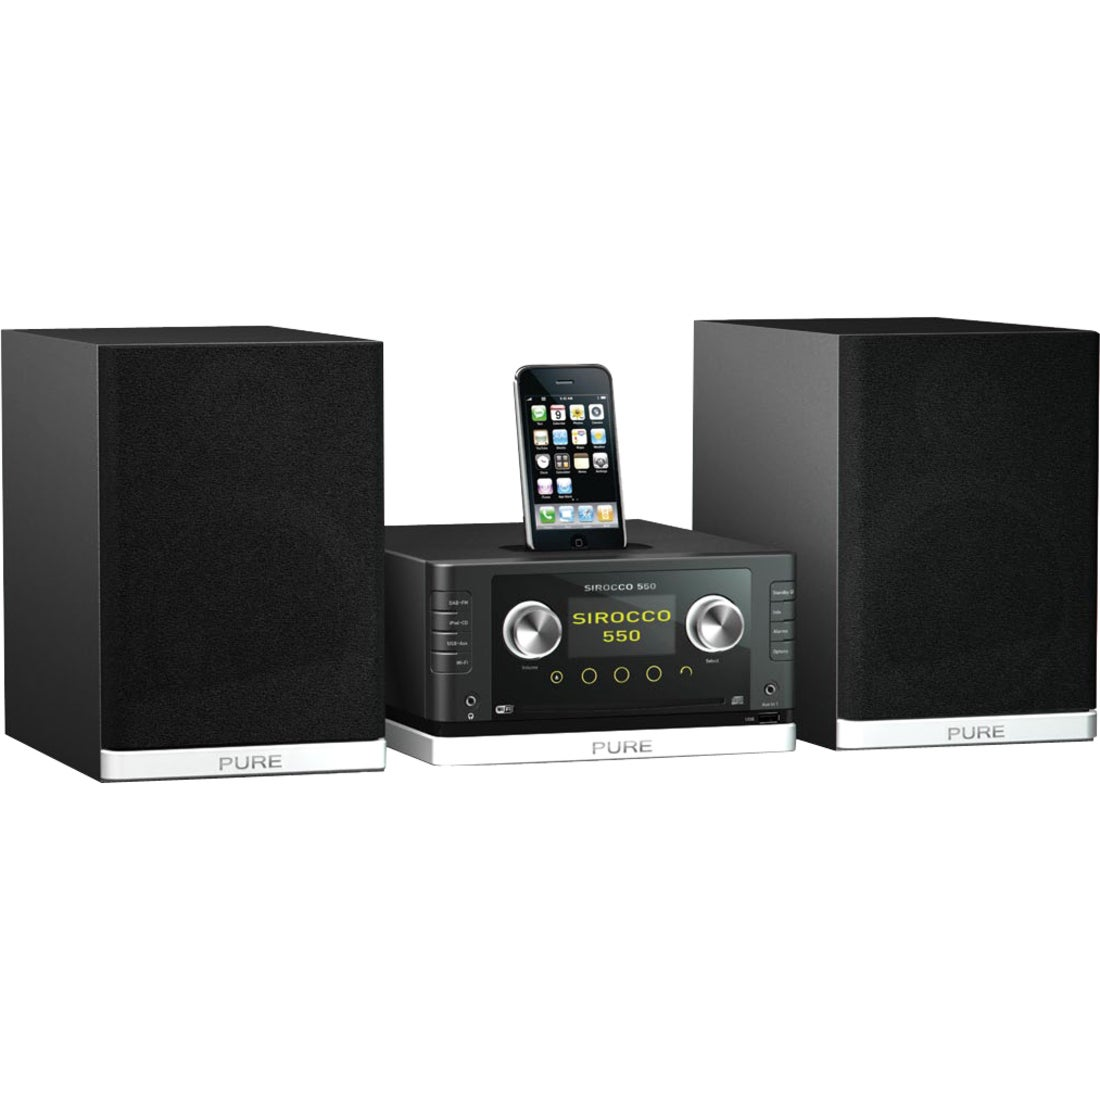 Pure Sirocco 550 Micro Hi-Fi System - 80 W RMS - iPod Supported - Bla